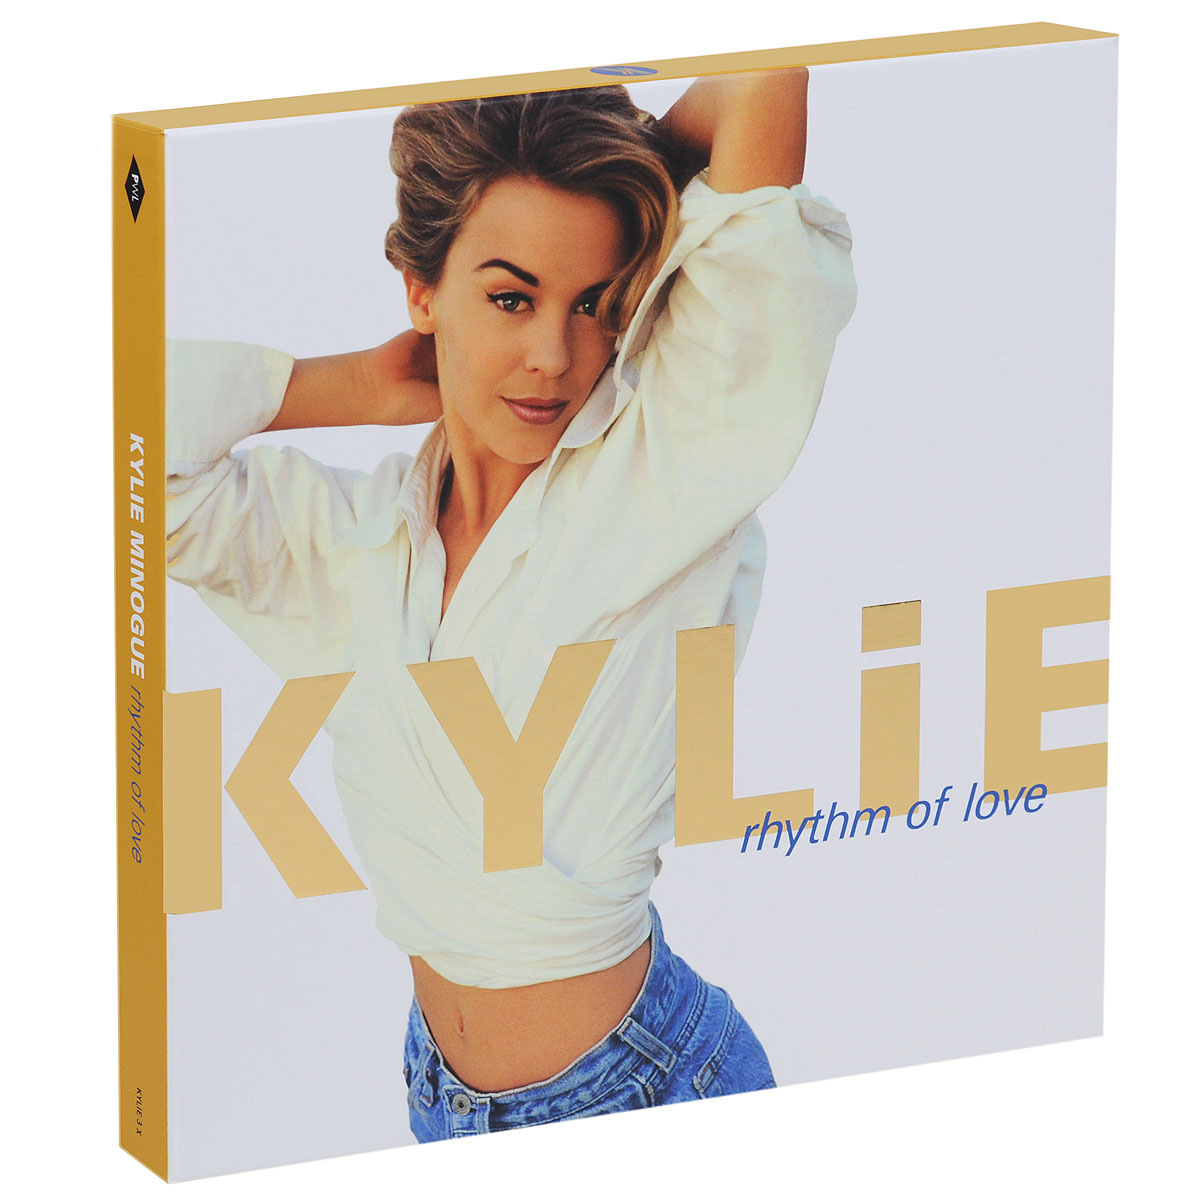 цены на Кайли Миноуг Kylie Minogue. Rhythm Of Love (2 CD + DVD + LP) в интернет-магазинах